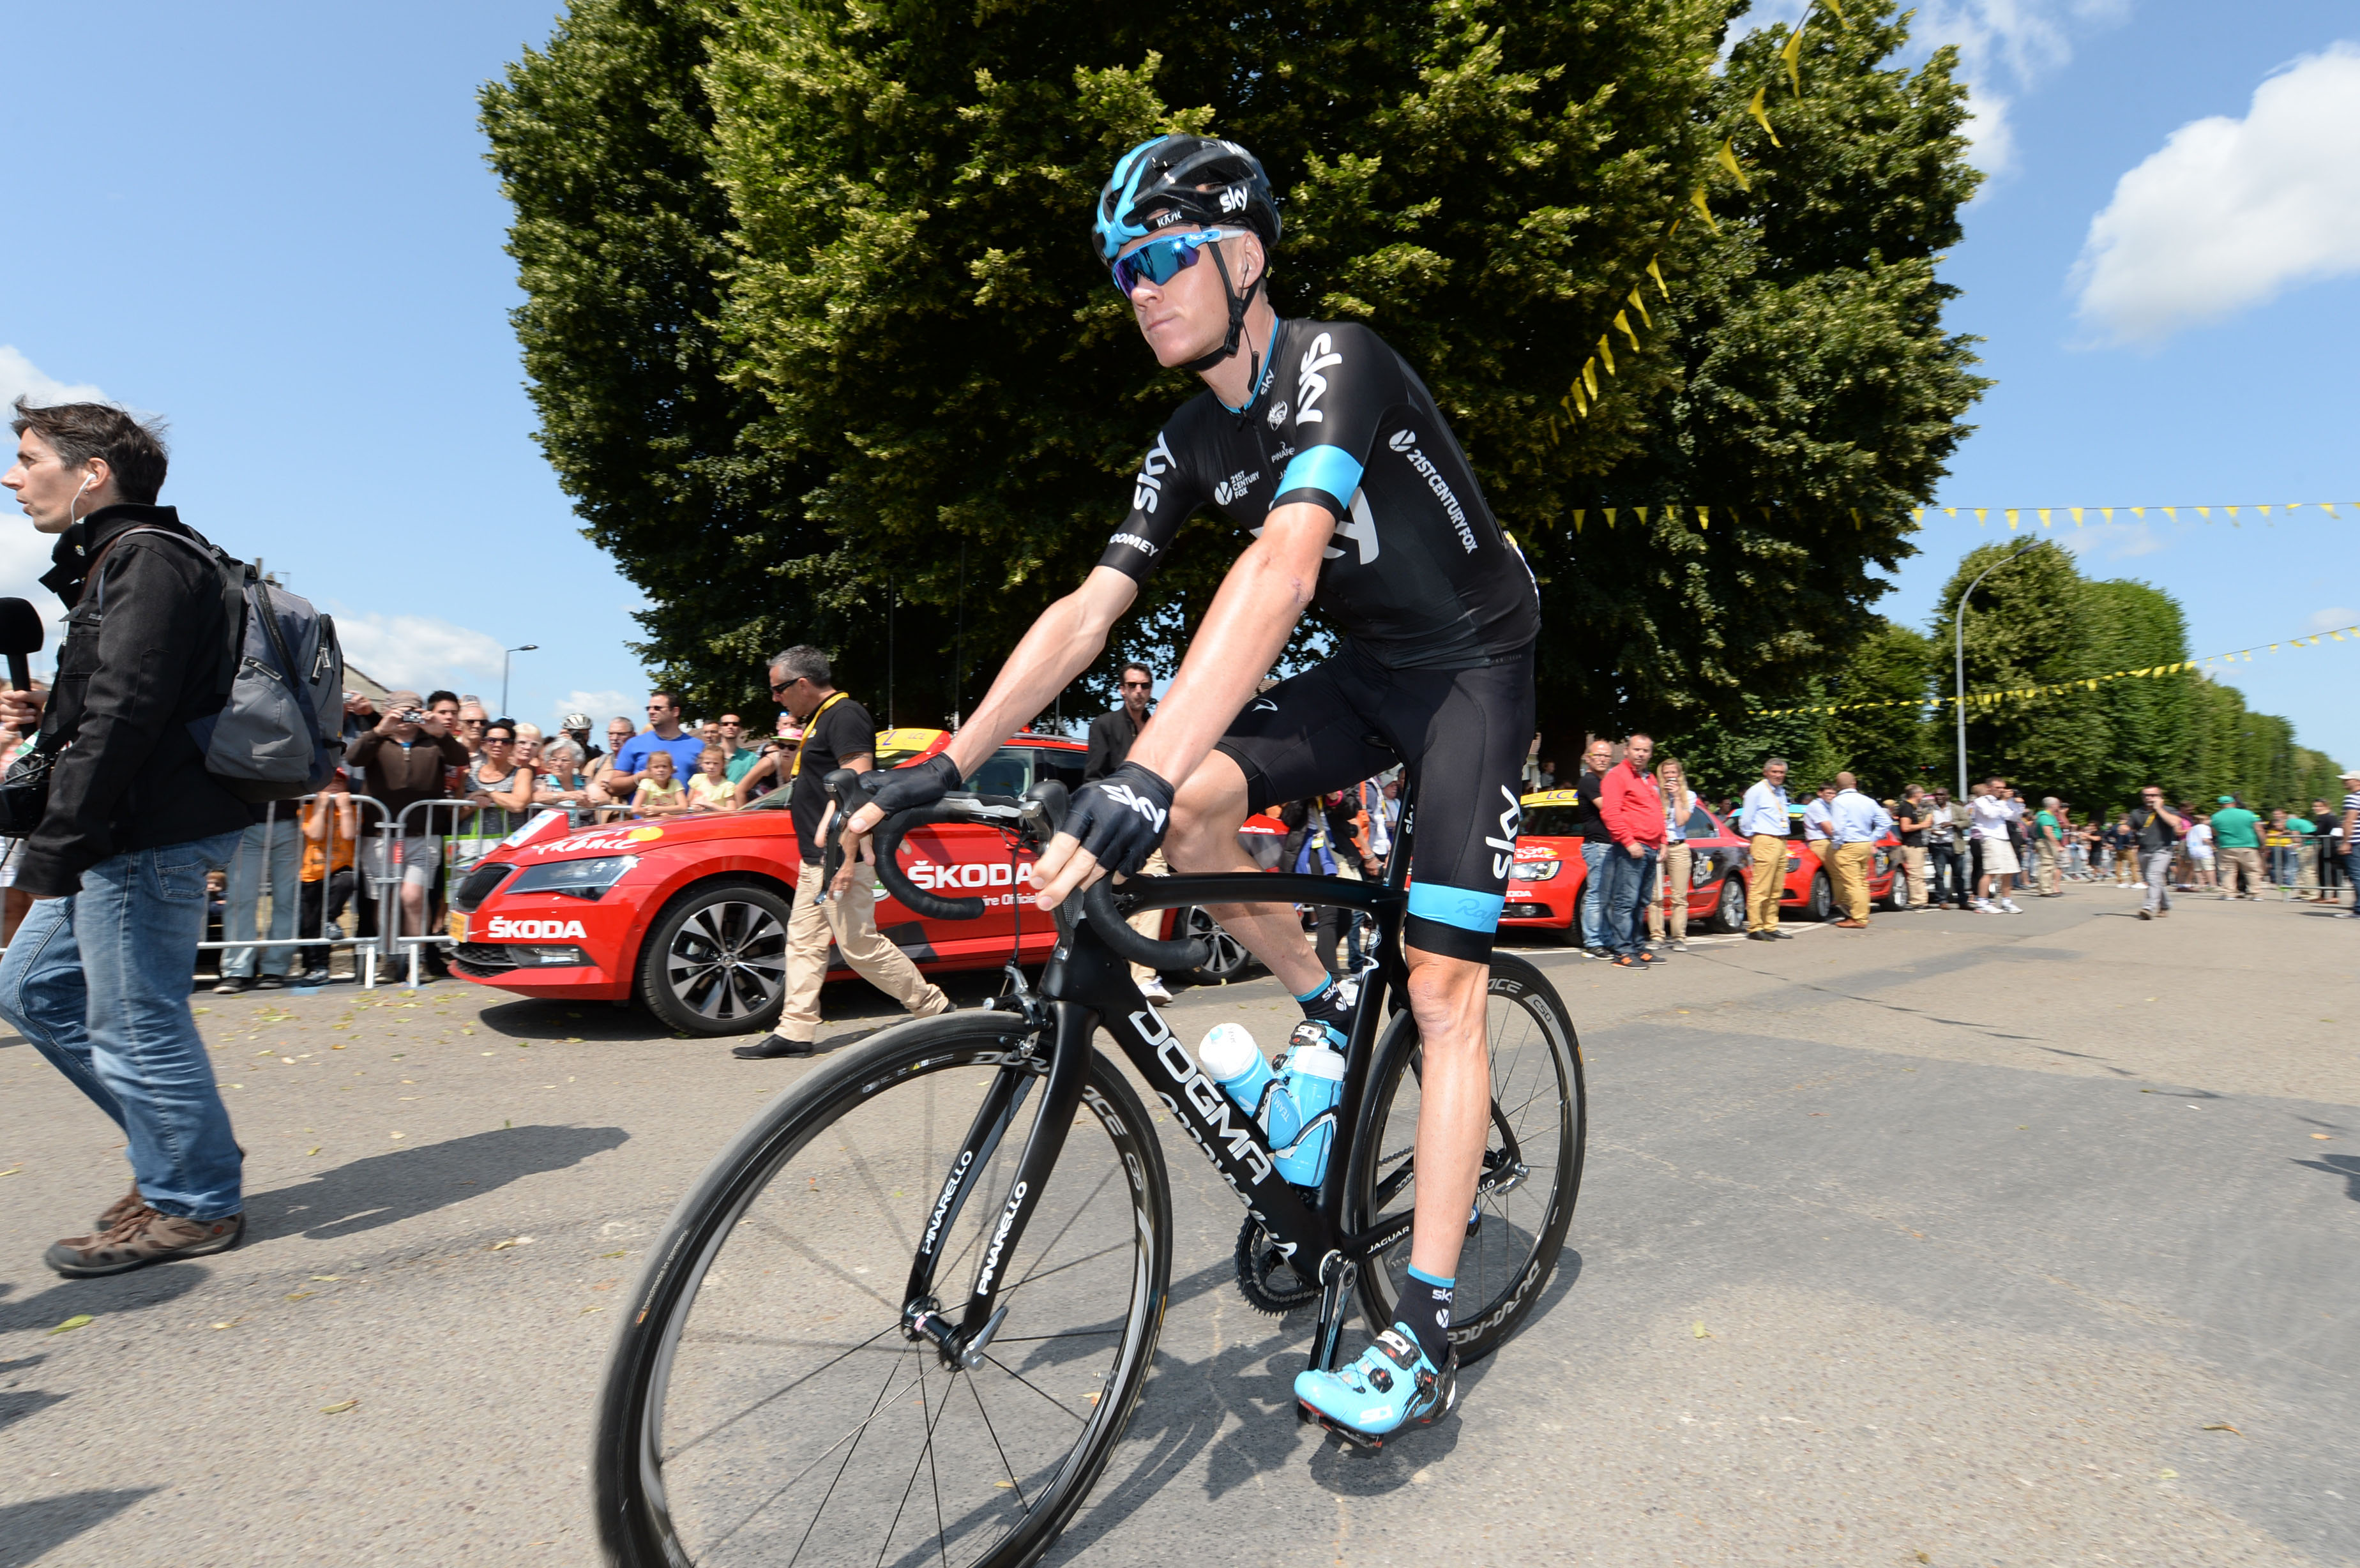 Tour de France 2015 - 6. Etappe - Chris Froome